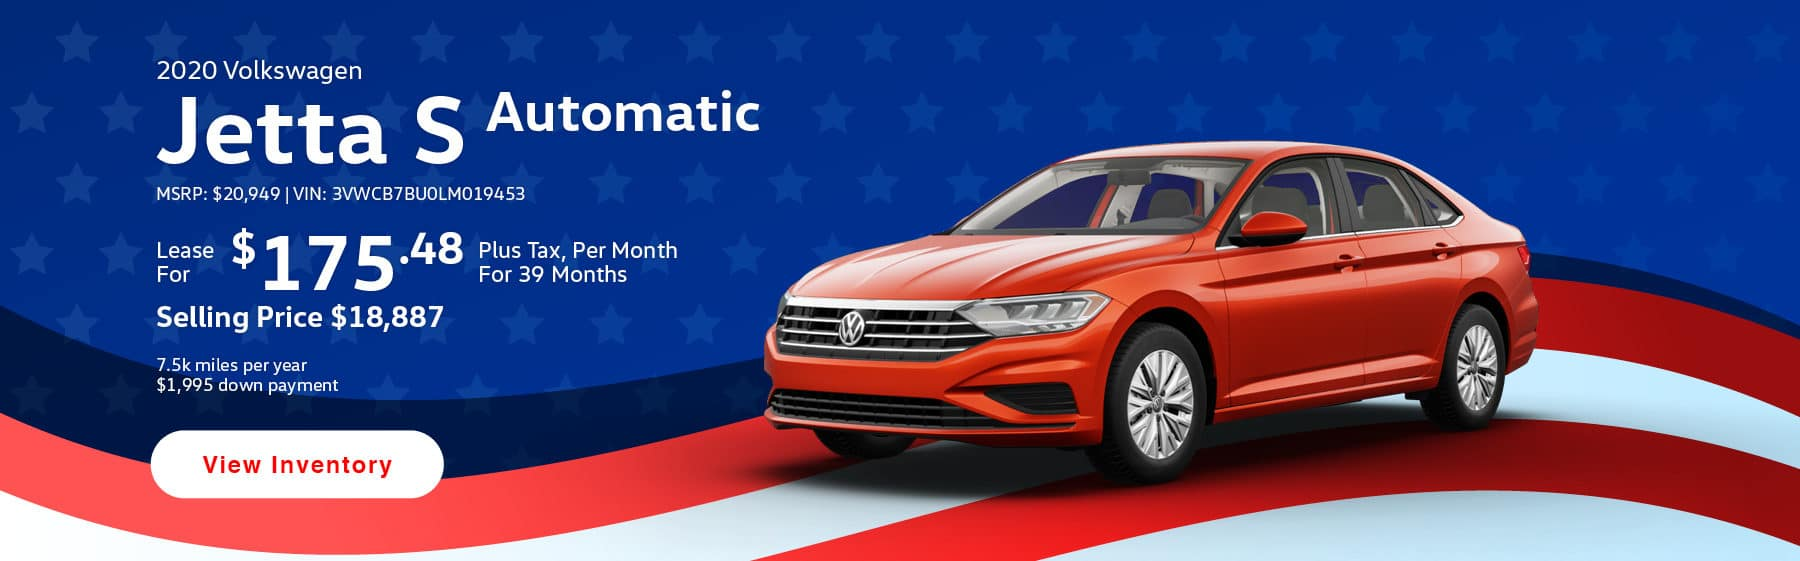 Lease the 2020 Jetta S for 175.48 per month, plus tax for 39 months.